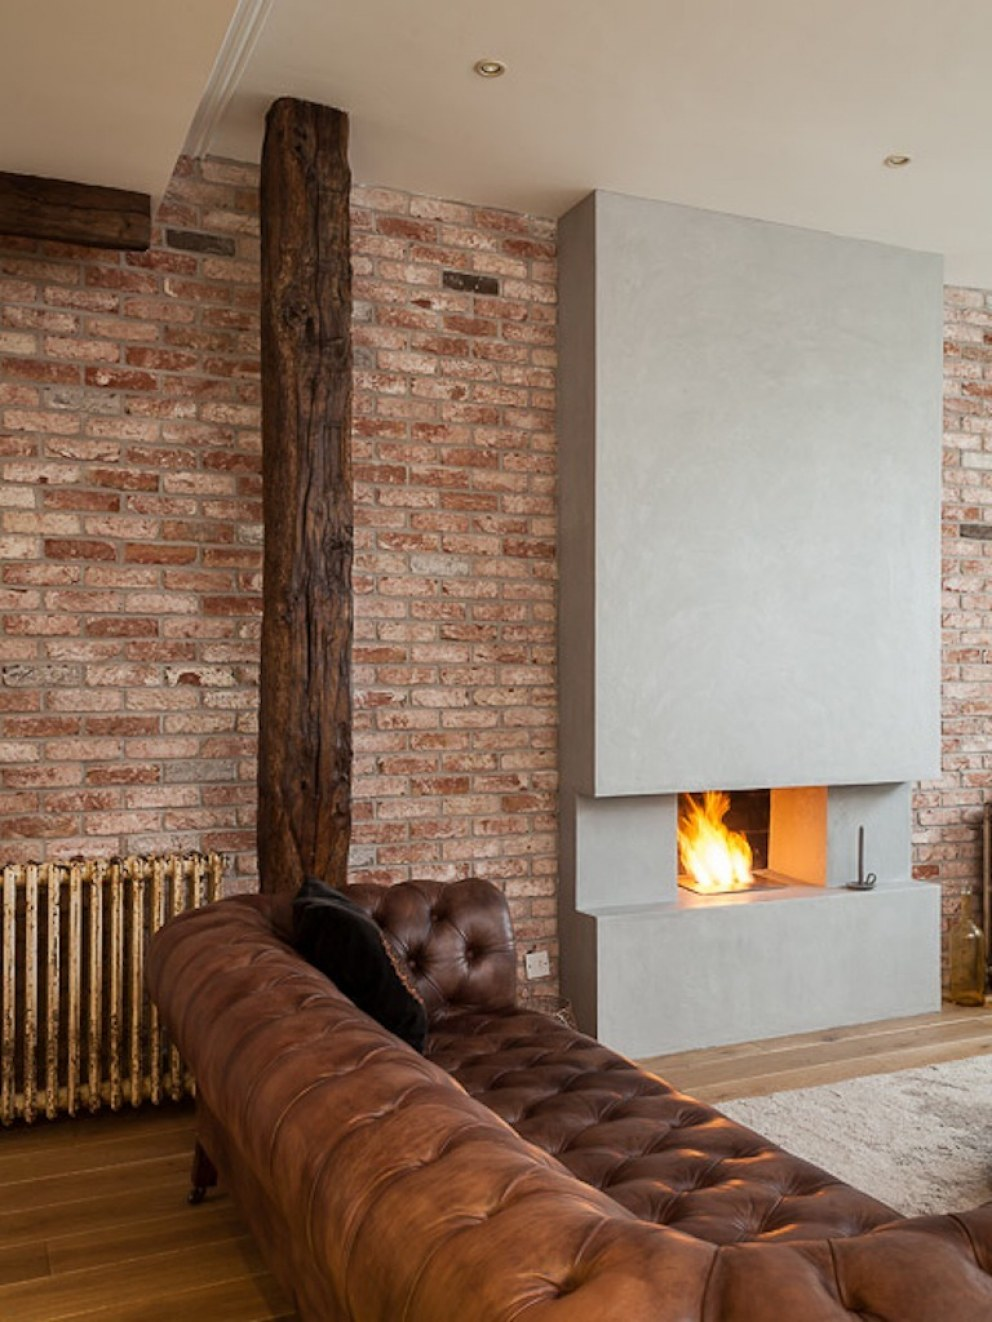 Post industrial chic in Fulham | Fireplace | Interior Designers